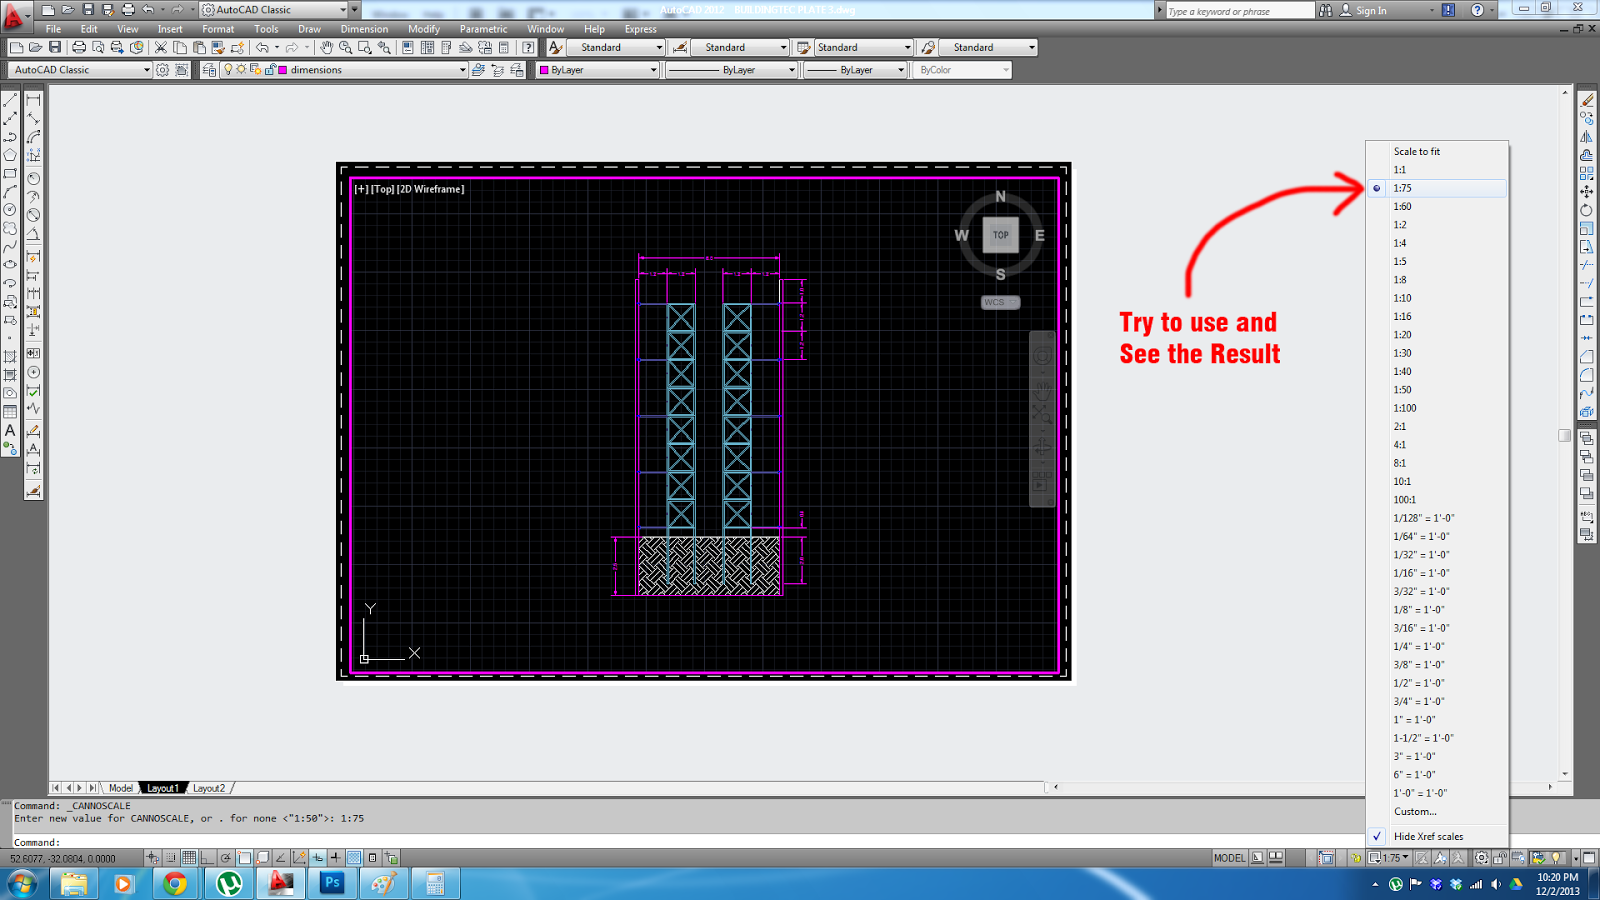 how to bring drawing in autocad after seeting up layout